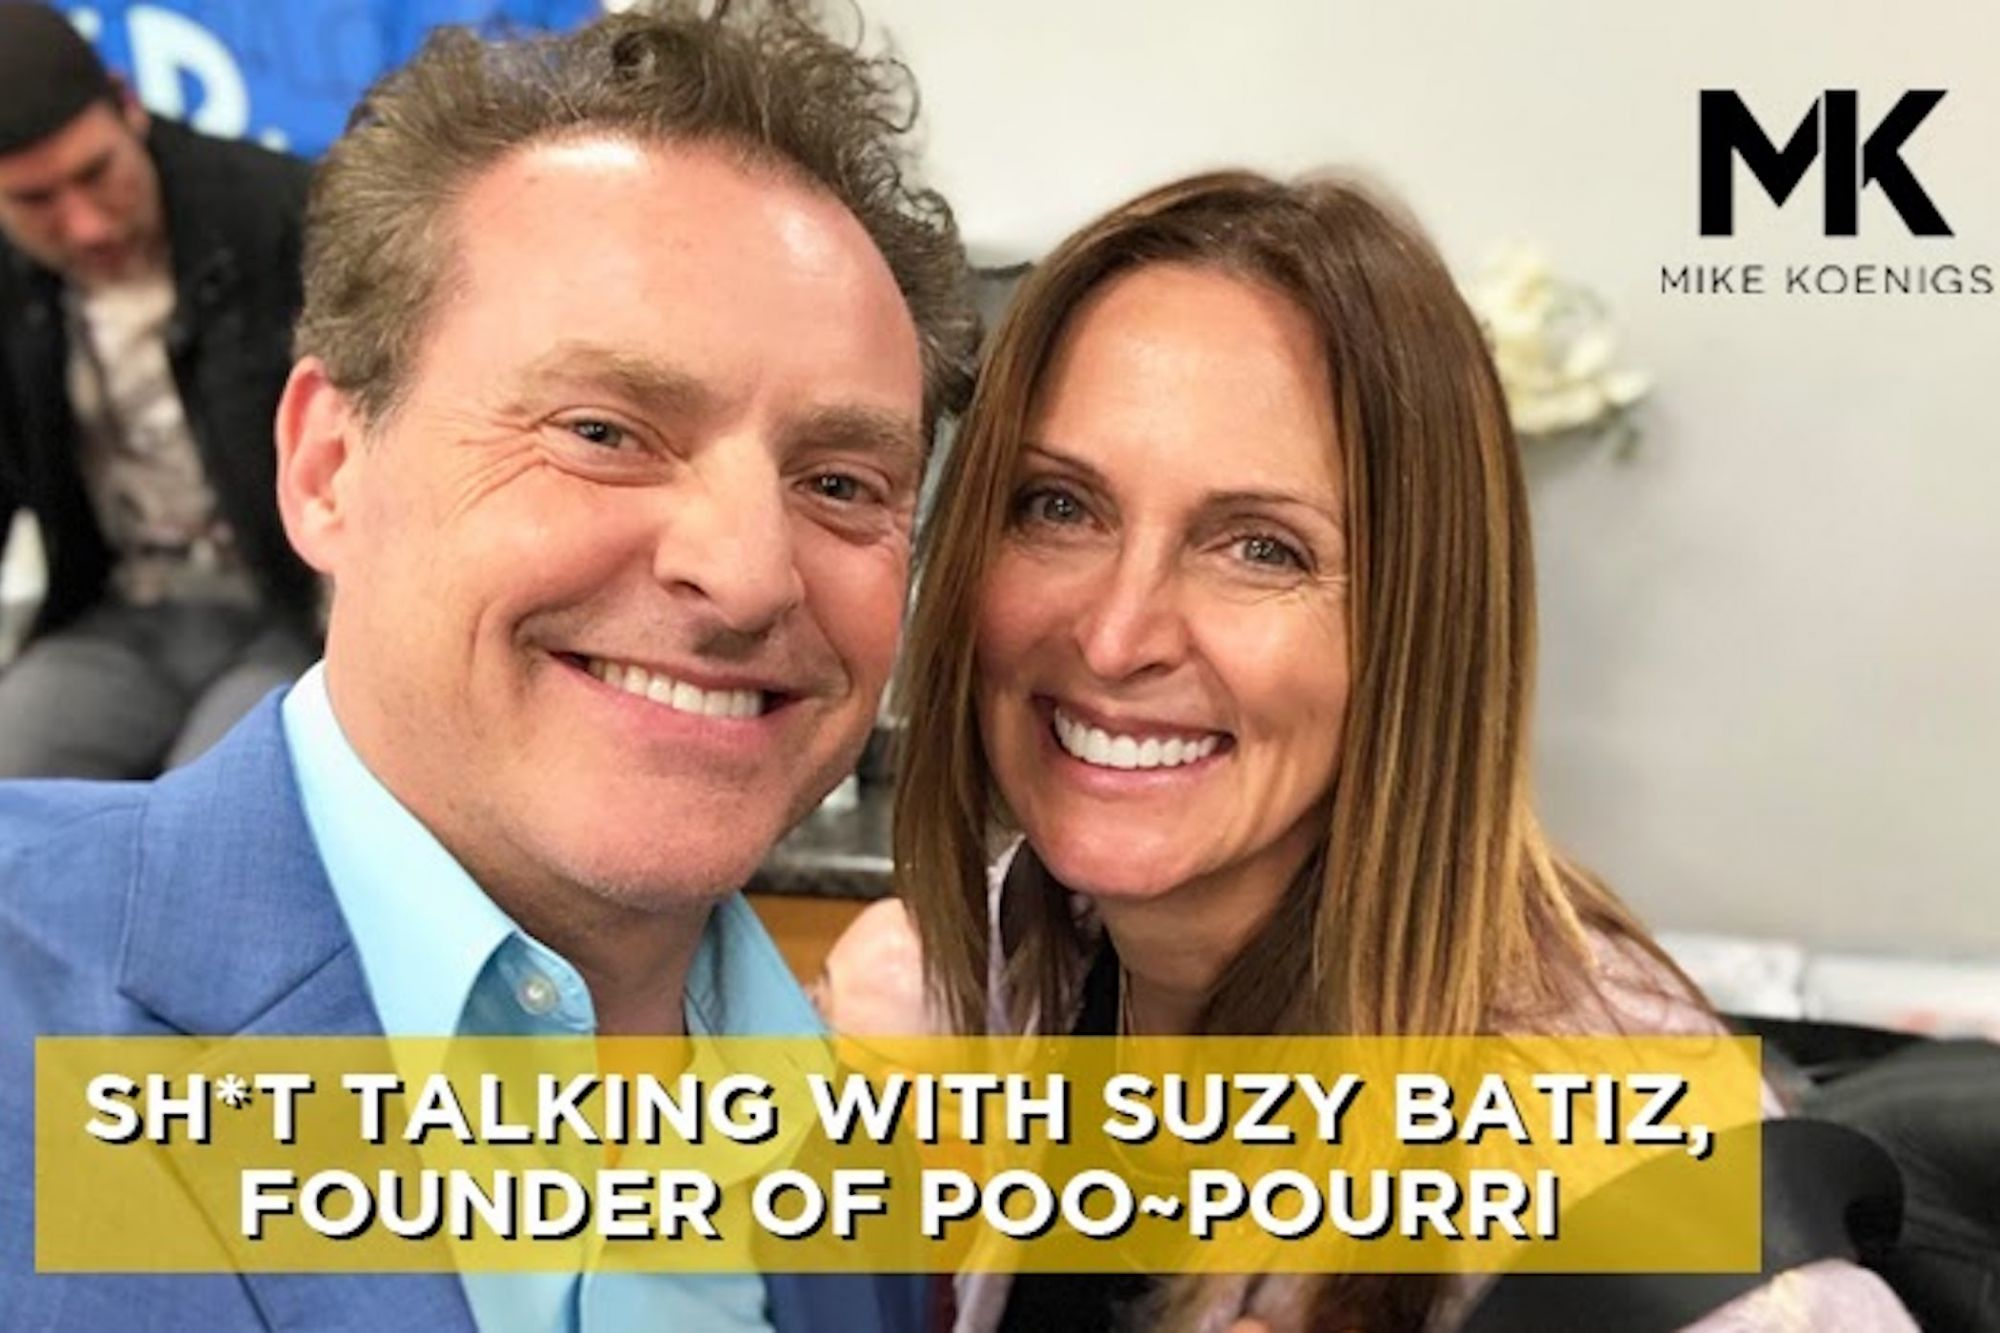 Sh*t Talking With Suzy Batiz, Founder of Poo-Pourri